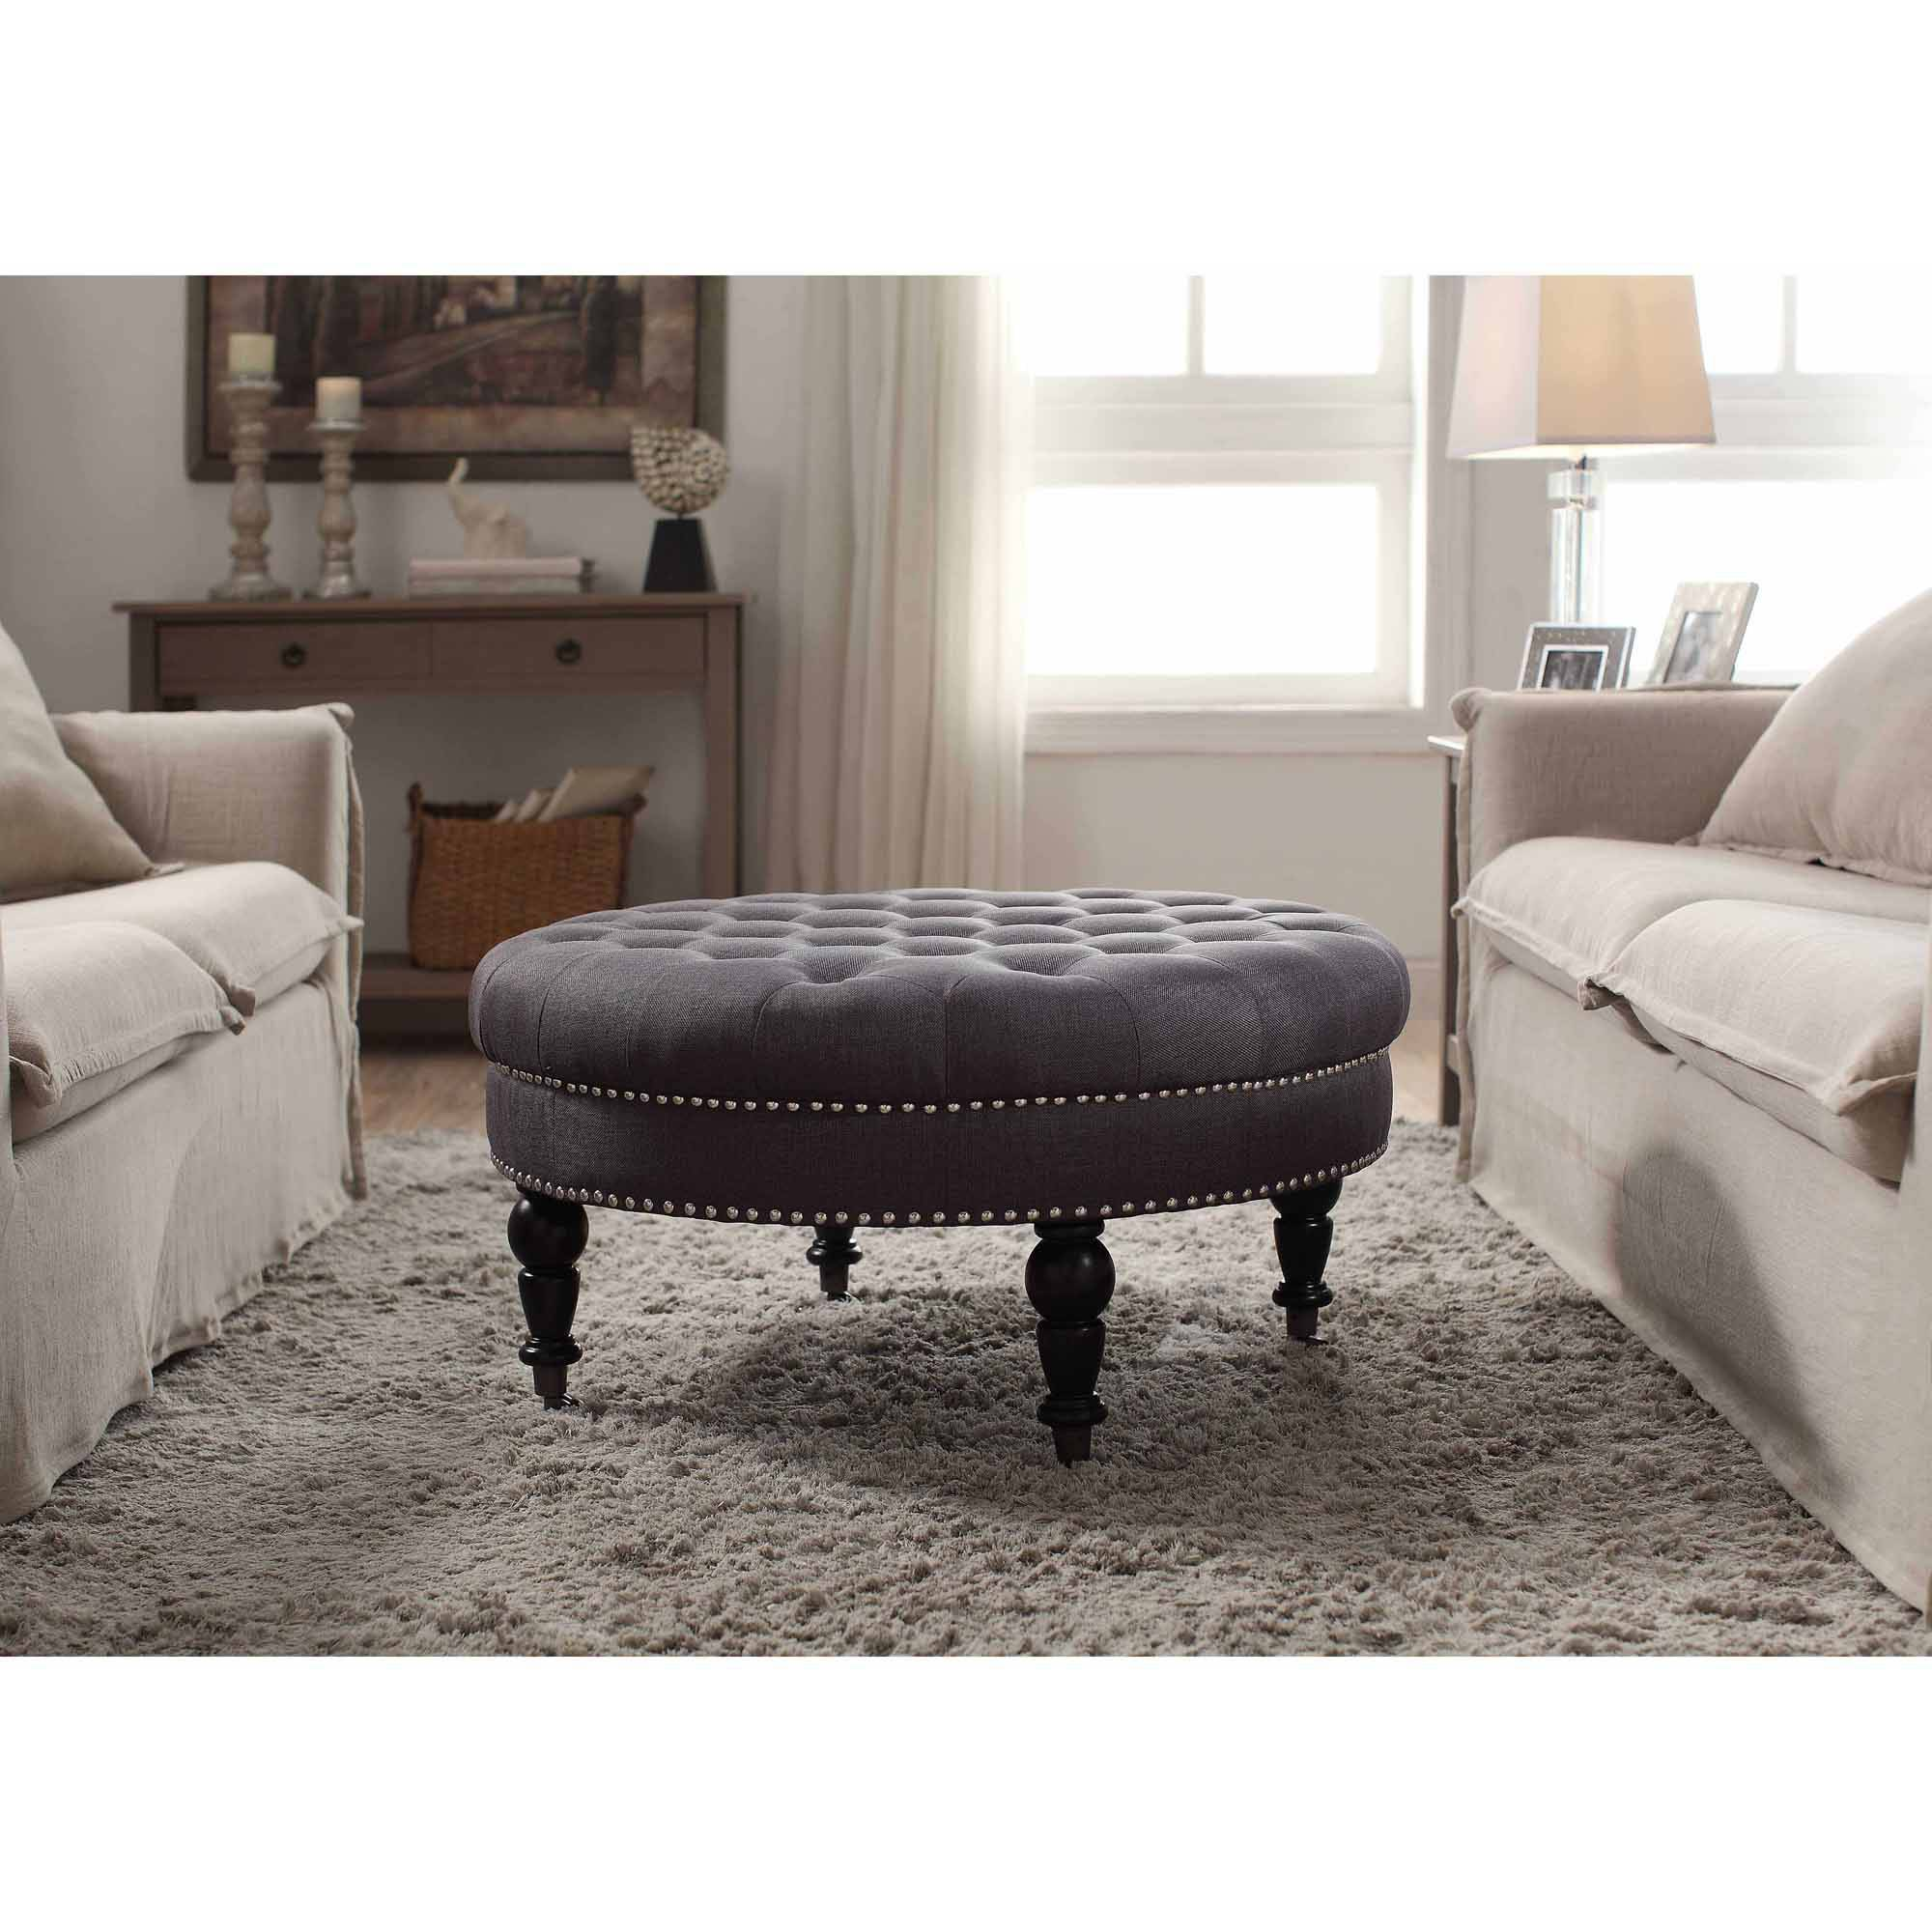 linon isabelle round tufted ottoman, multiple colors - walmart